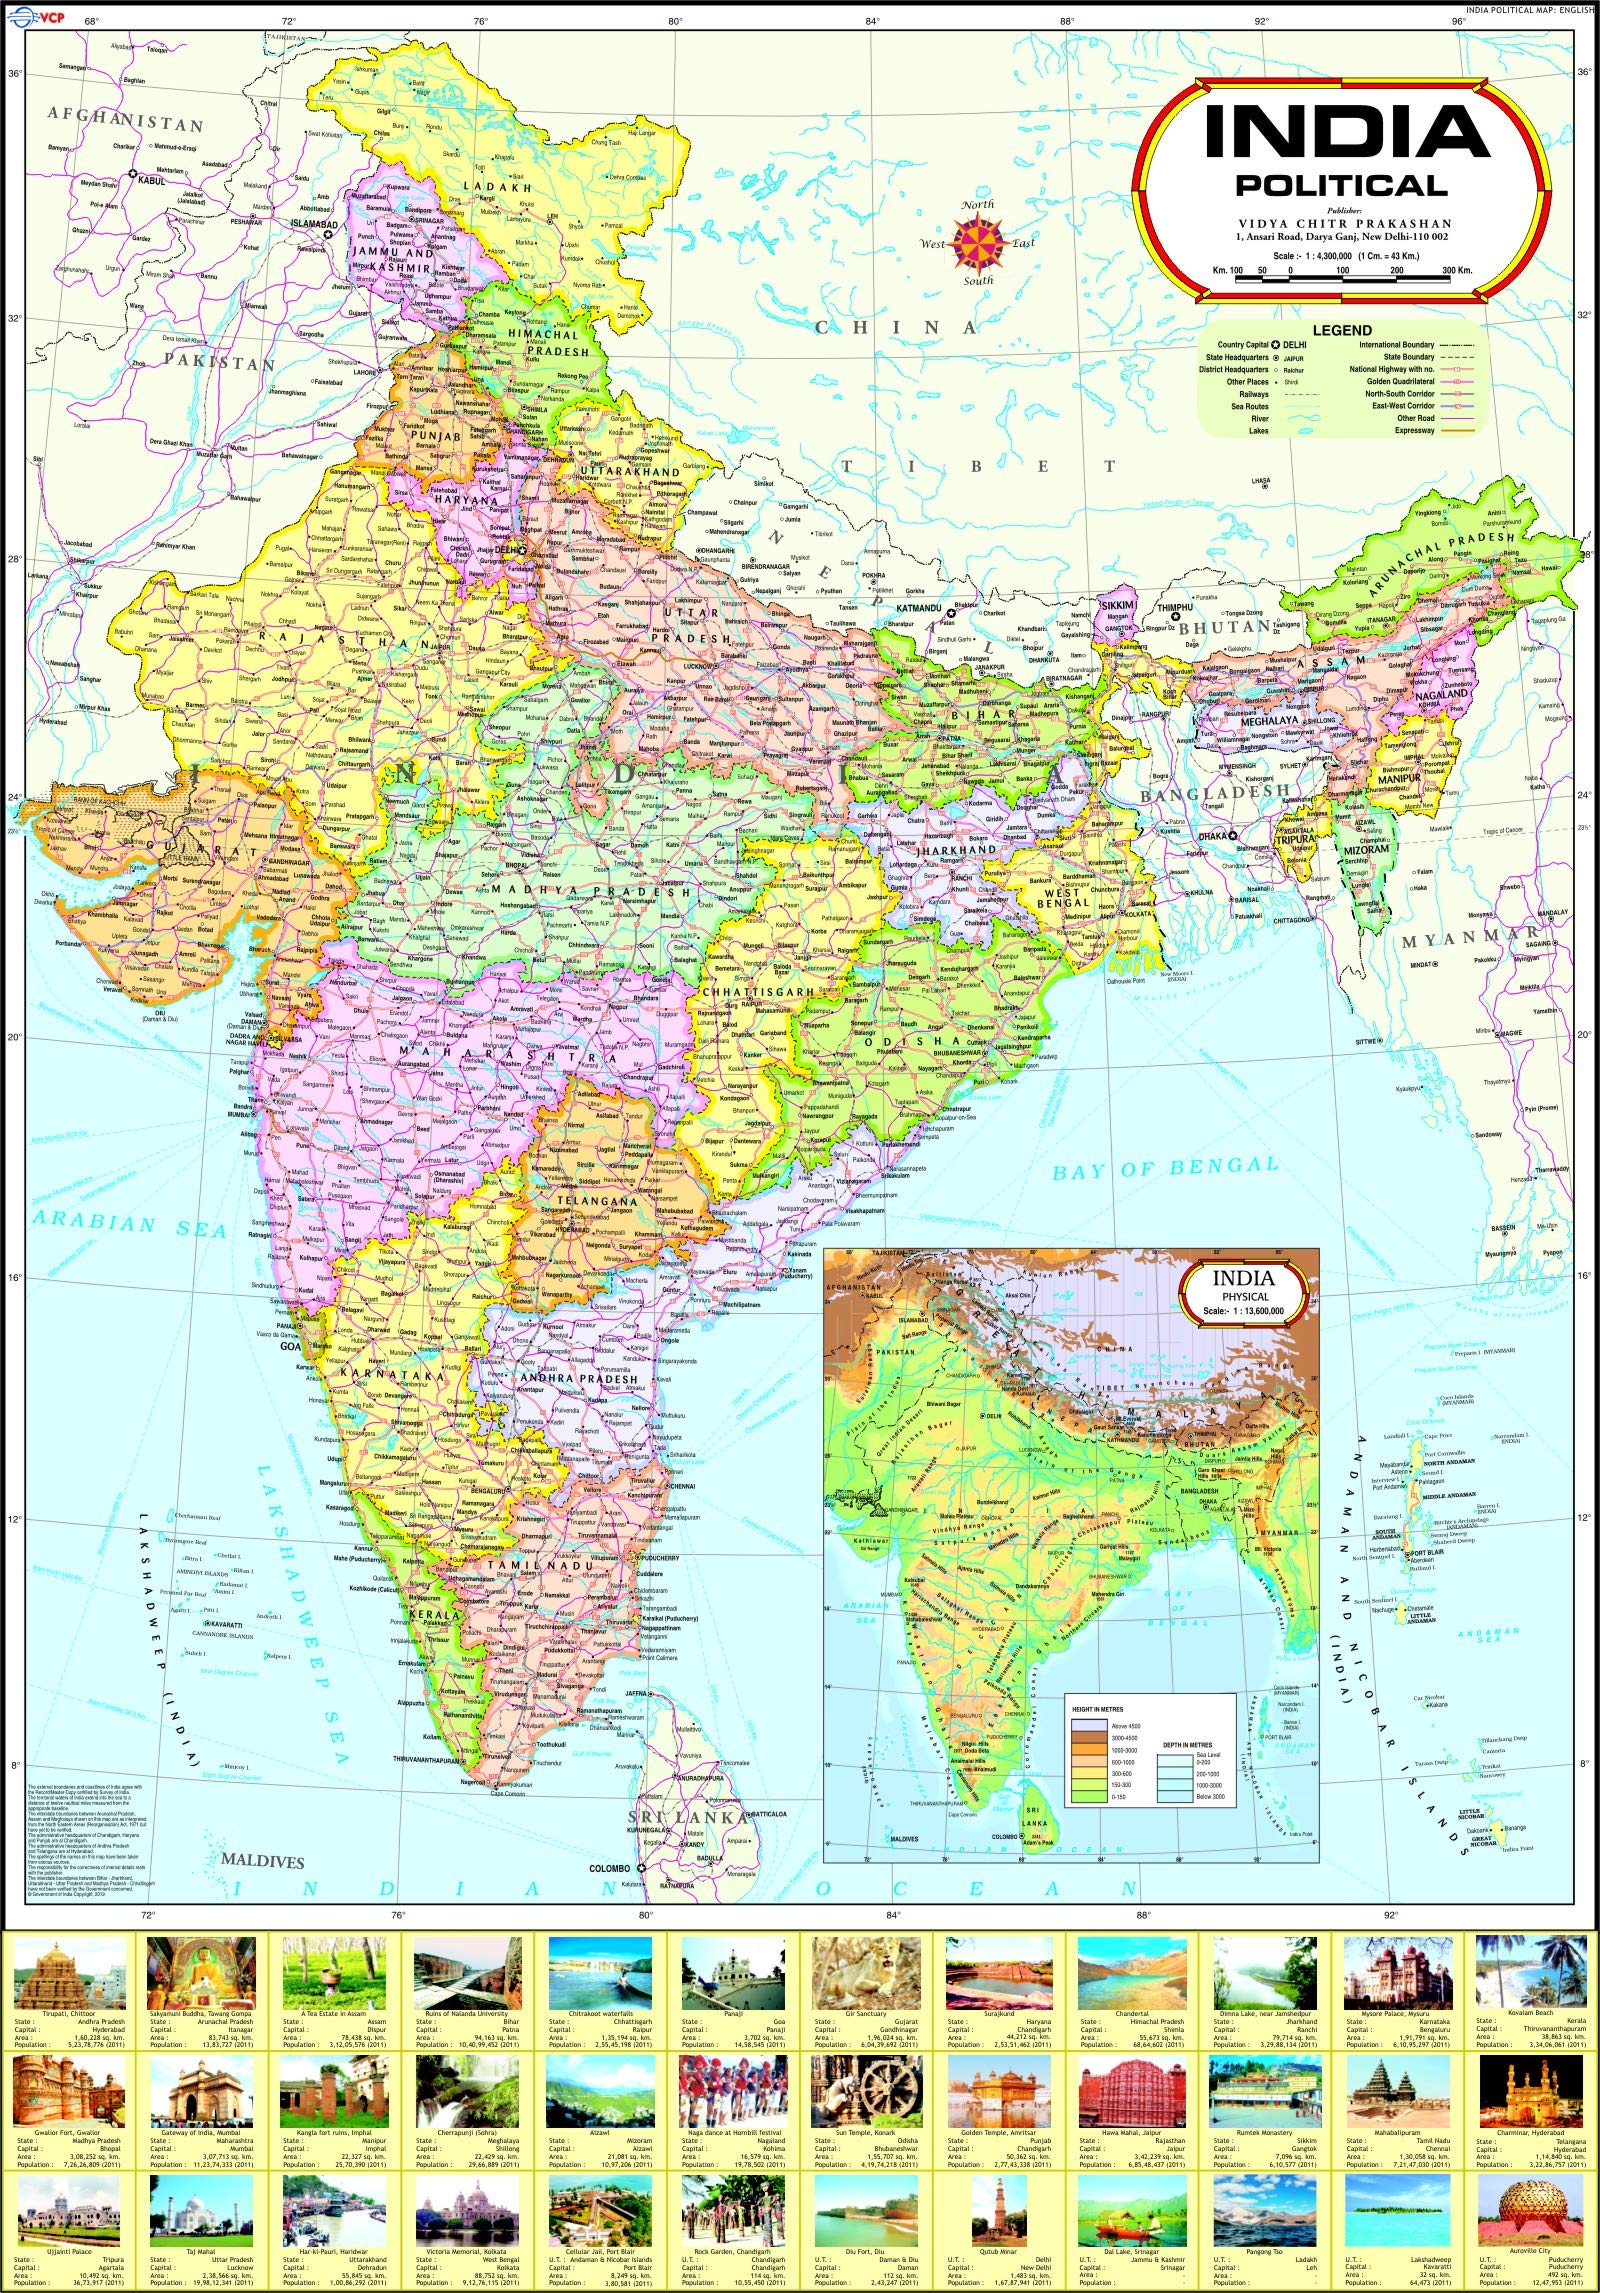 Buy India Map Political 70x100cm Latest Jammu Kashmir Ladakh Boundary Book Online At Low Prices In India India Map Political 70x100cm Latest Jammu